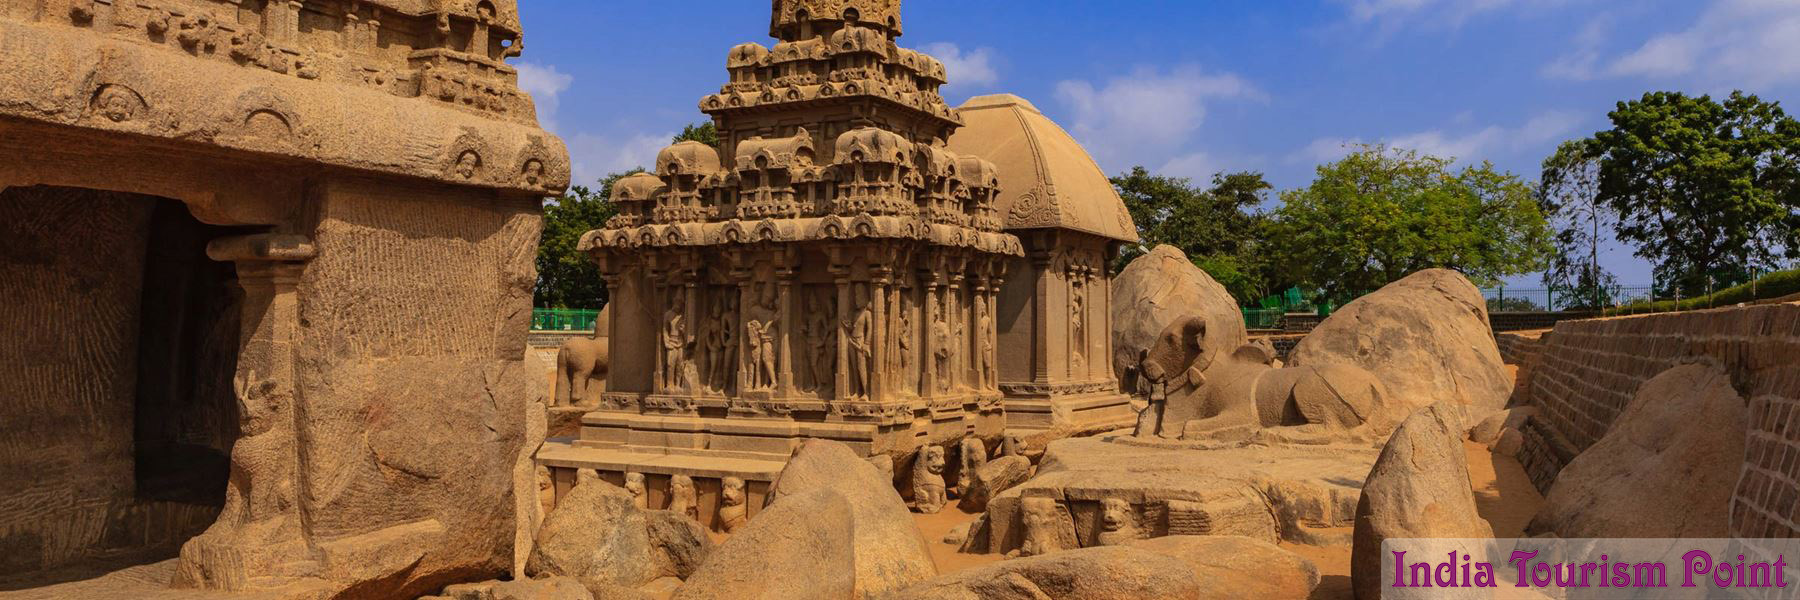 South Indian Temple Tourism, Tours & Best Time to Visit India